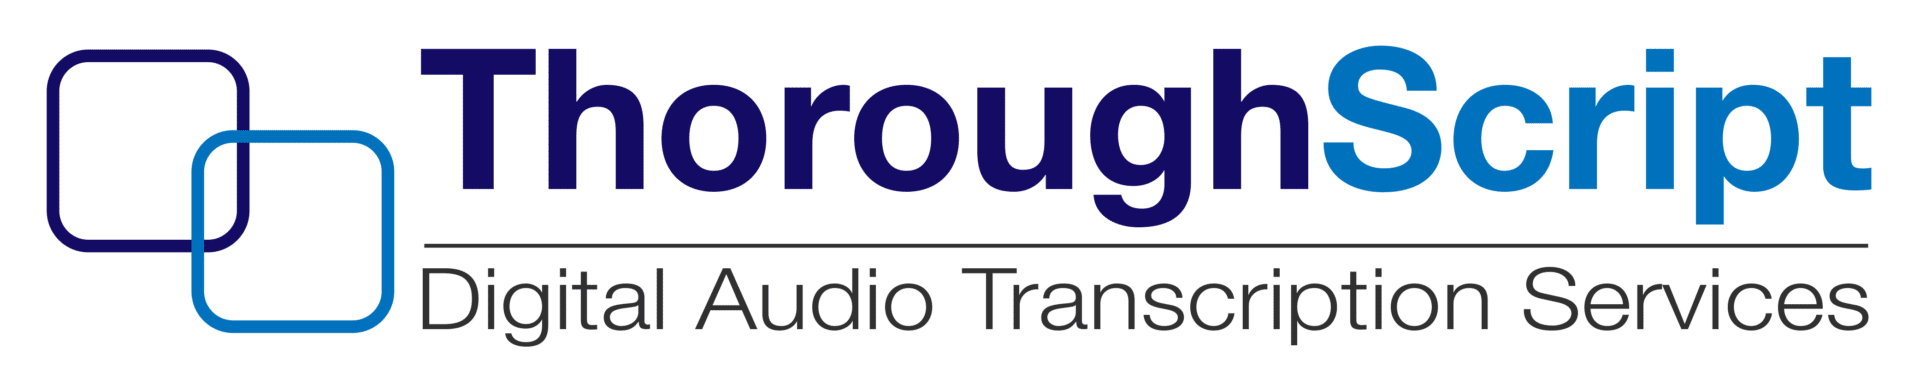 ThoroughScript | Digital Audio Transcription Services